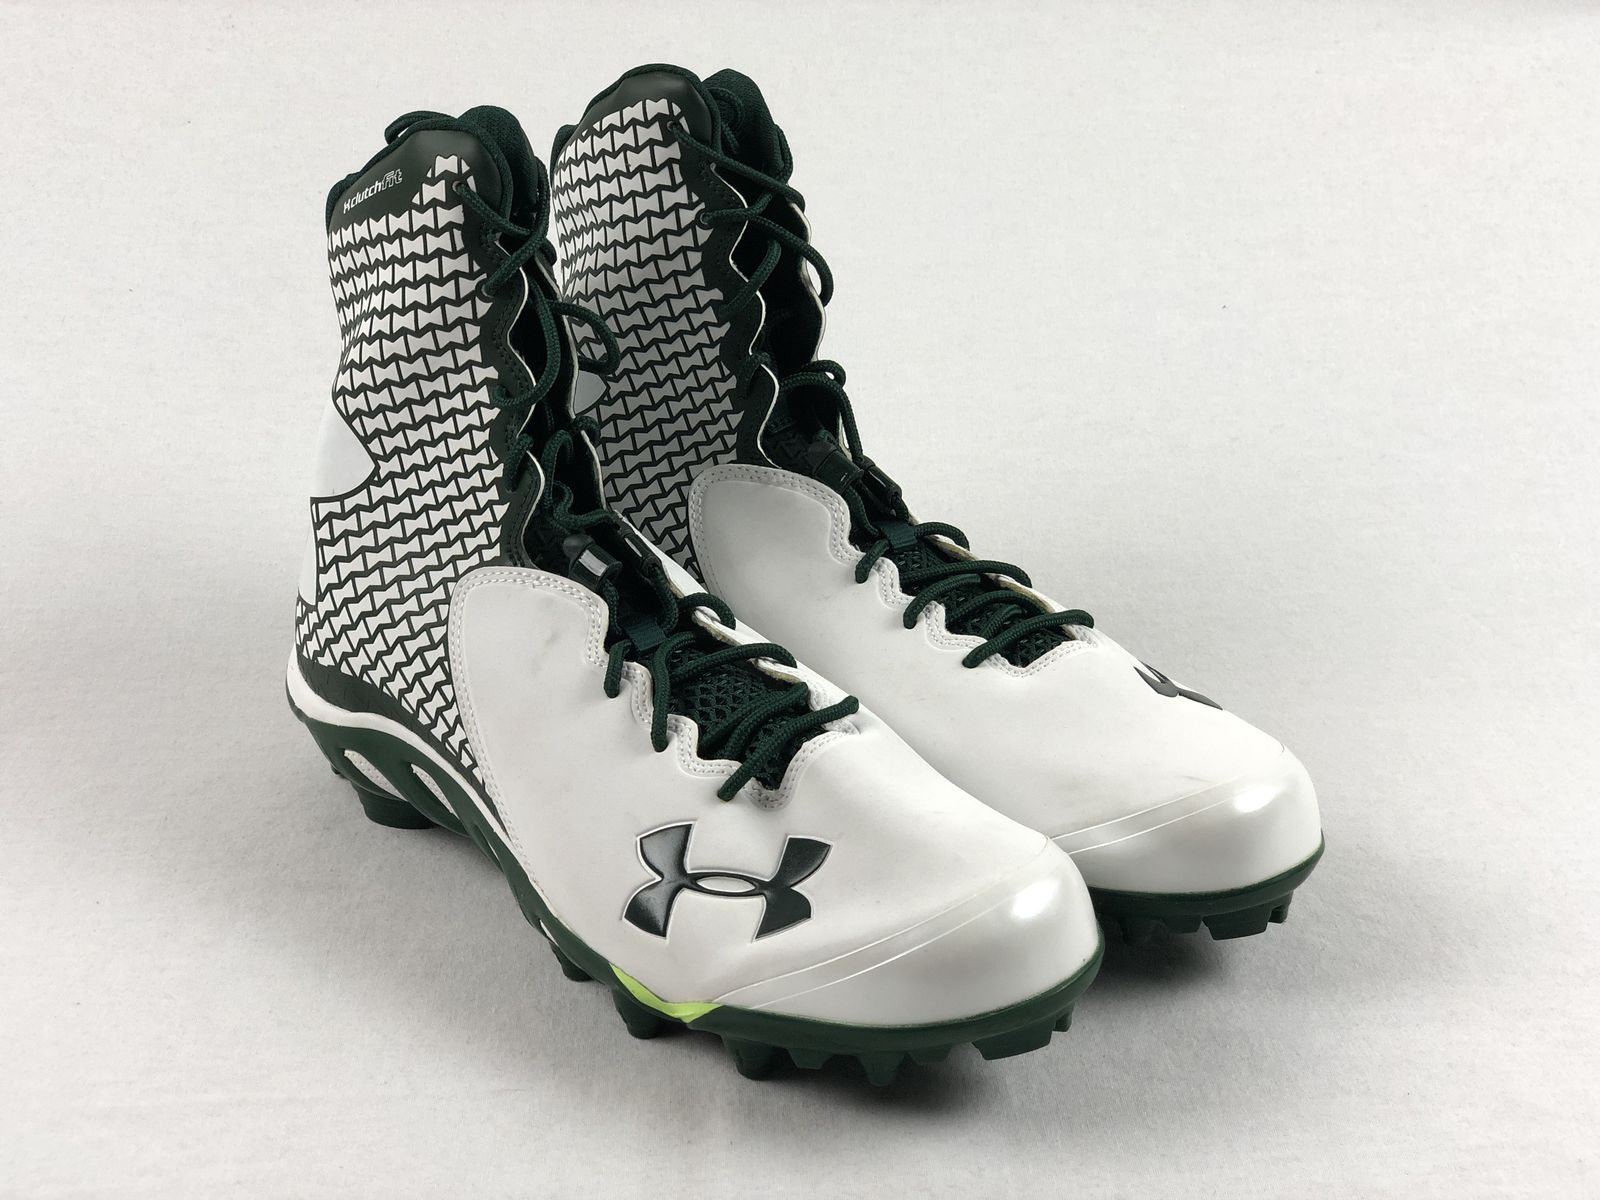 NEW Under Armour Nitro Clutch Fit White//Black Cleats Men/'s Multiple Sizes